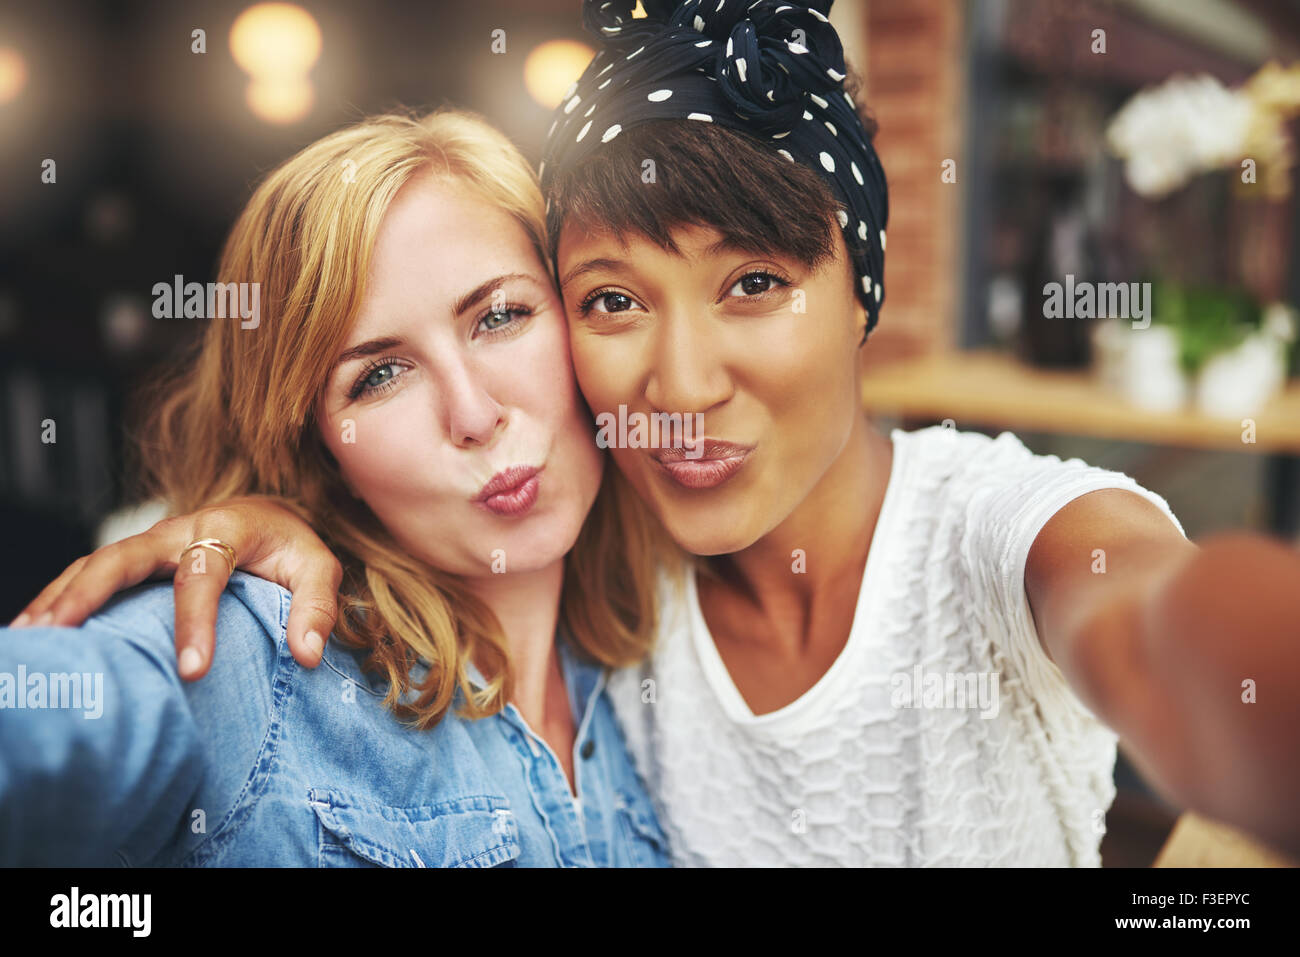 Two attractive playful young women standing arm in arm blowing a kiss at the camera puckering up their lips with - Stock Image